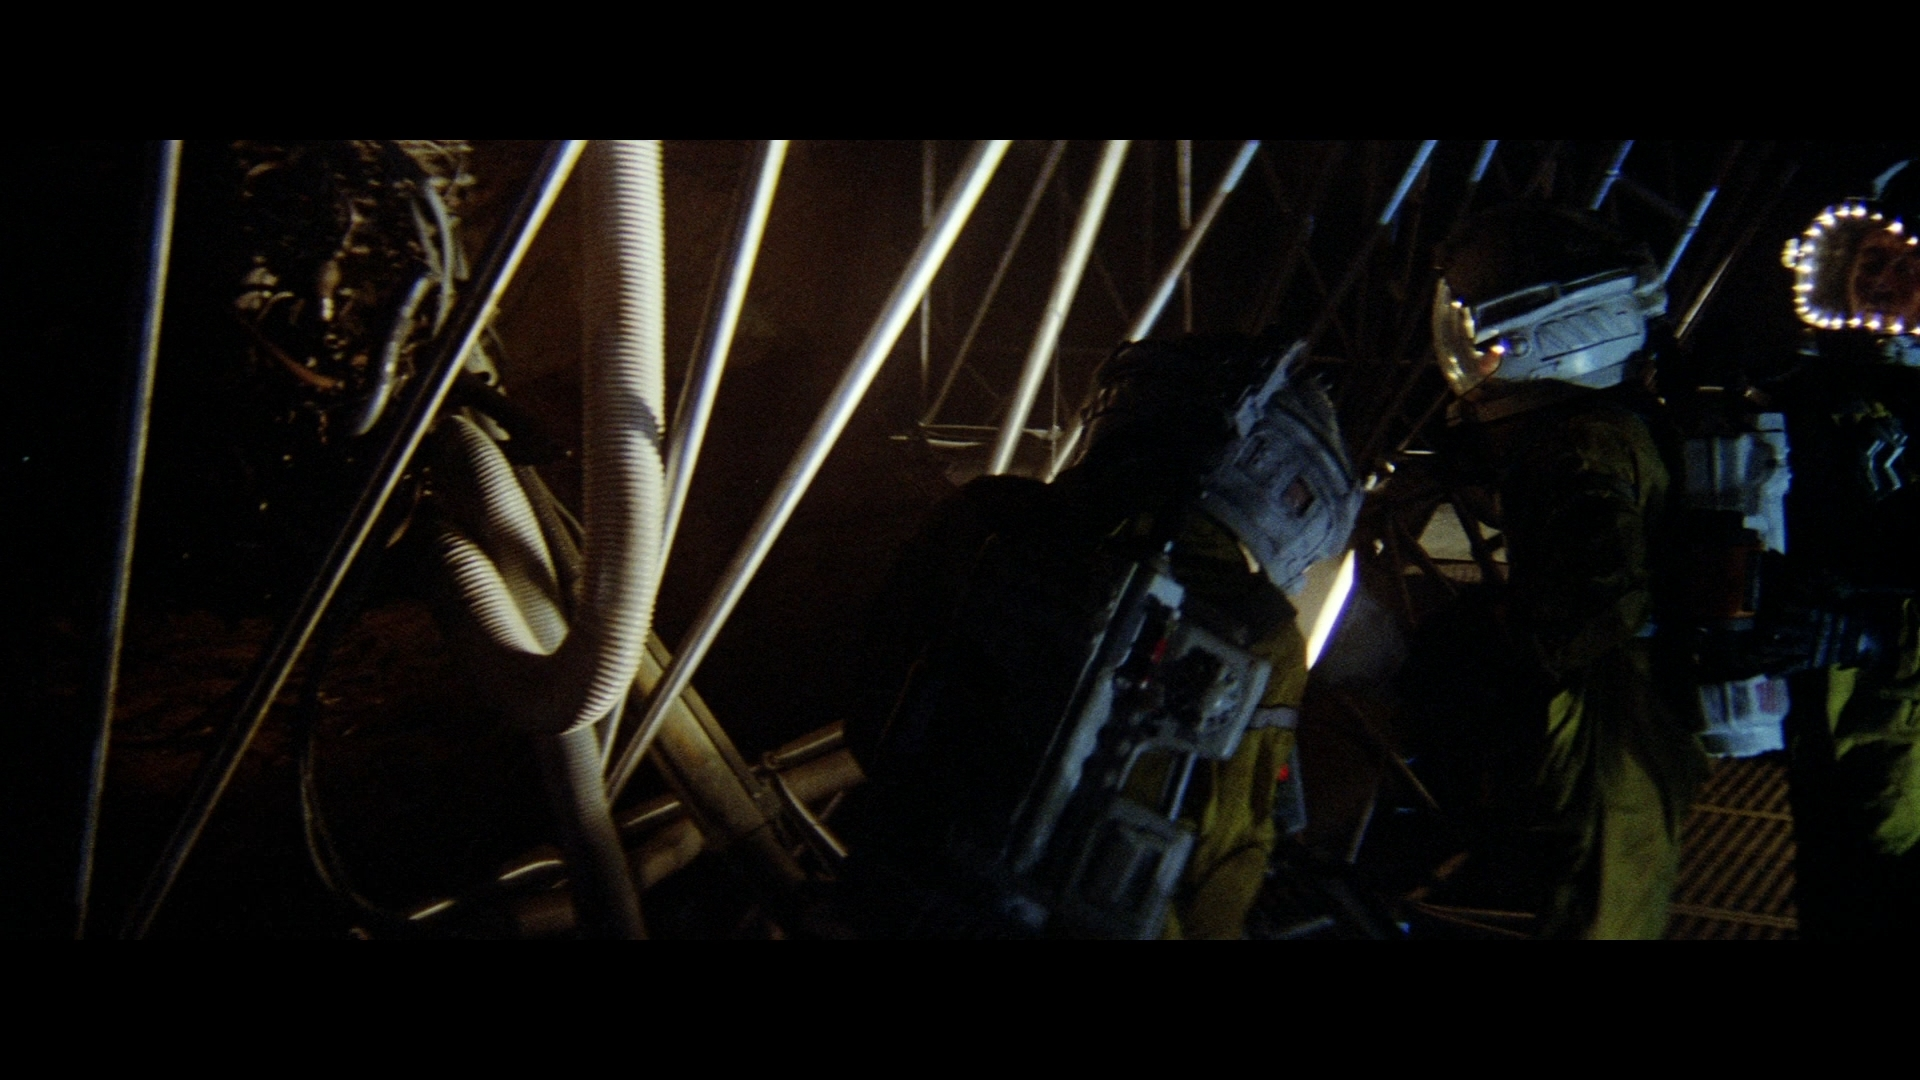 ALIENS (1986) - Salvage Crew Backpack - Image 24 of 26